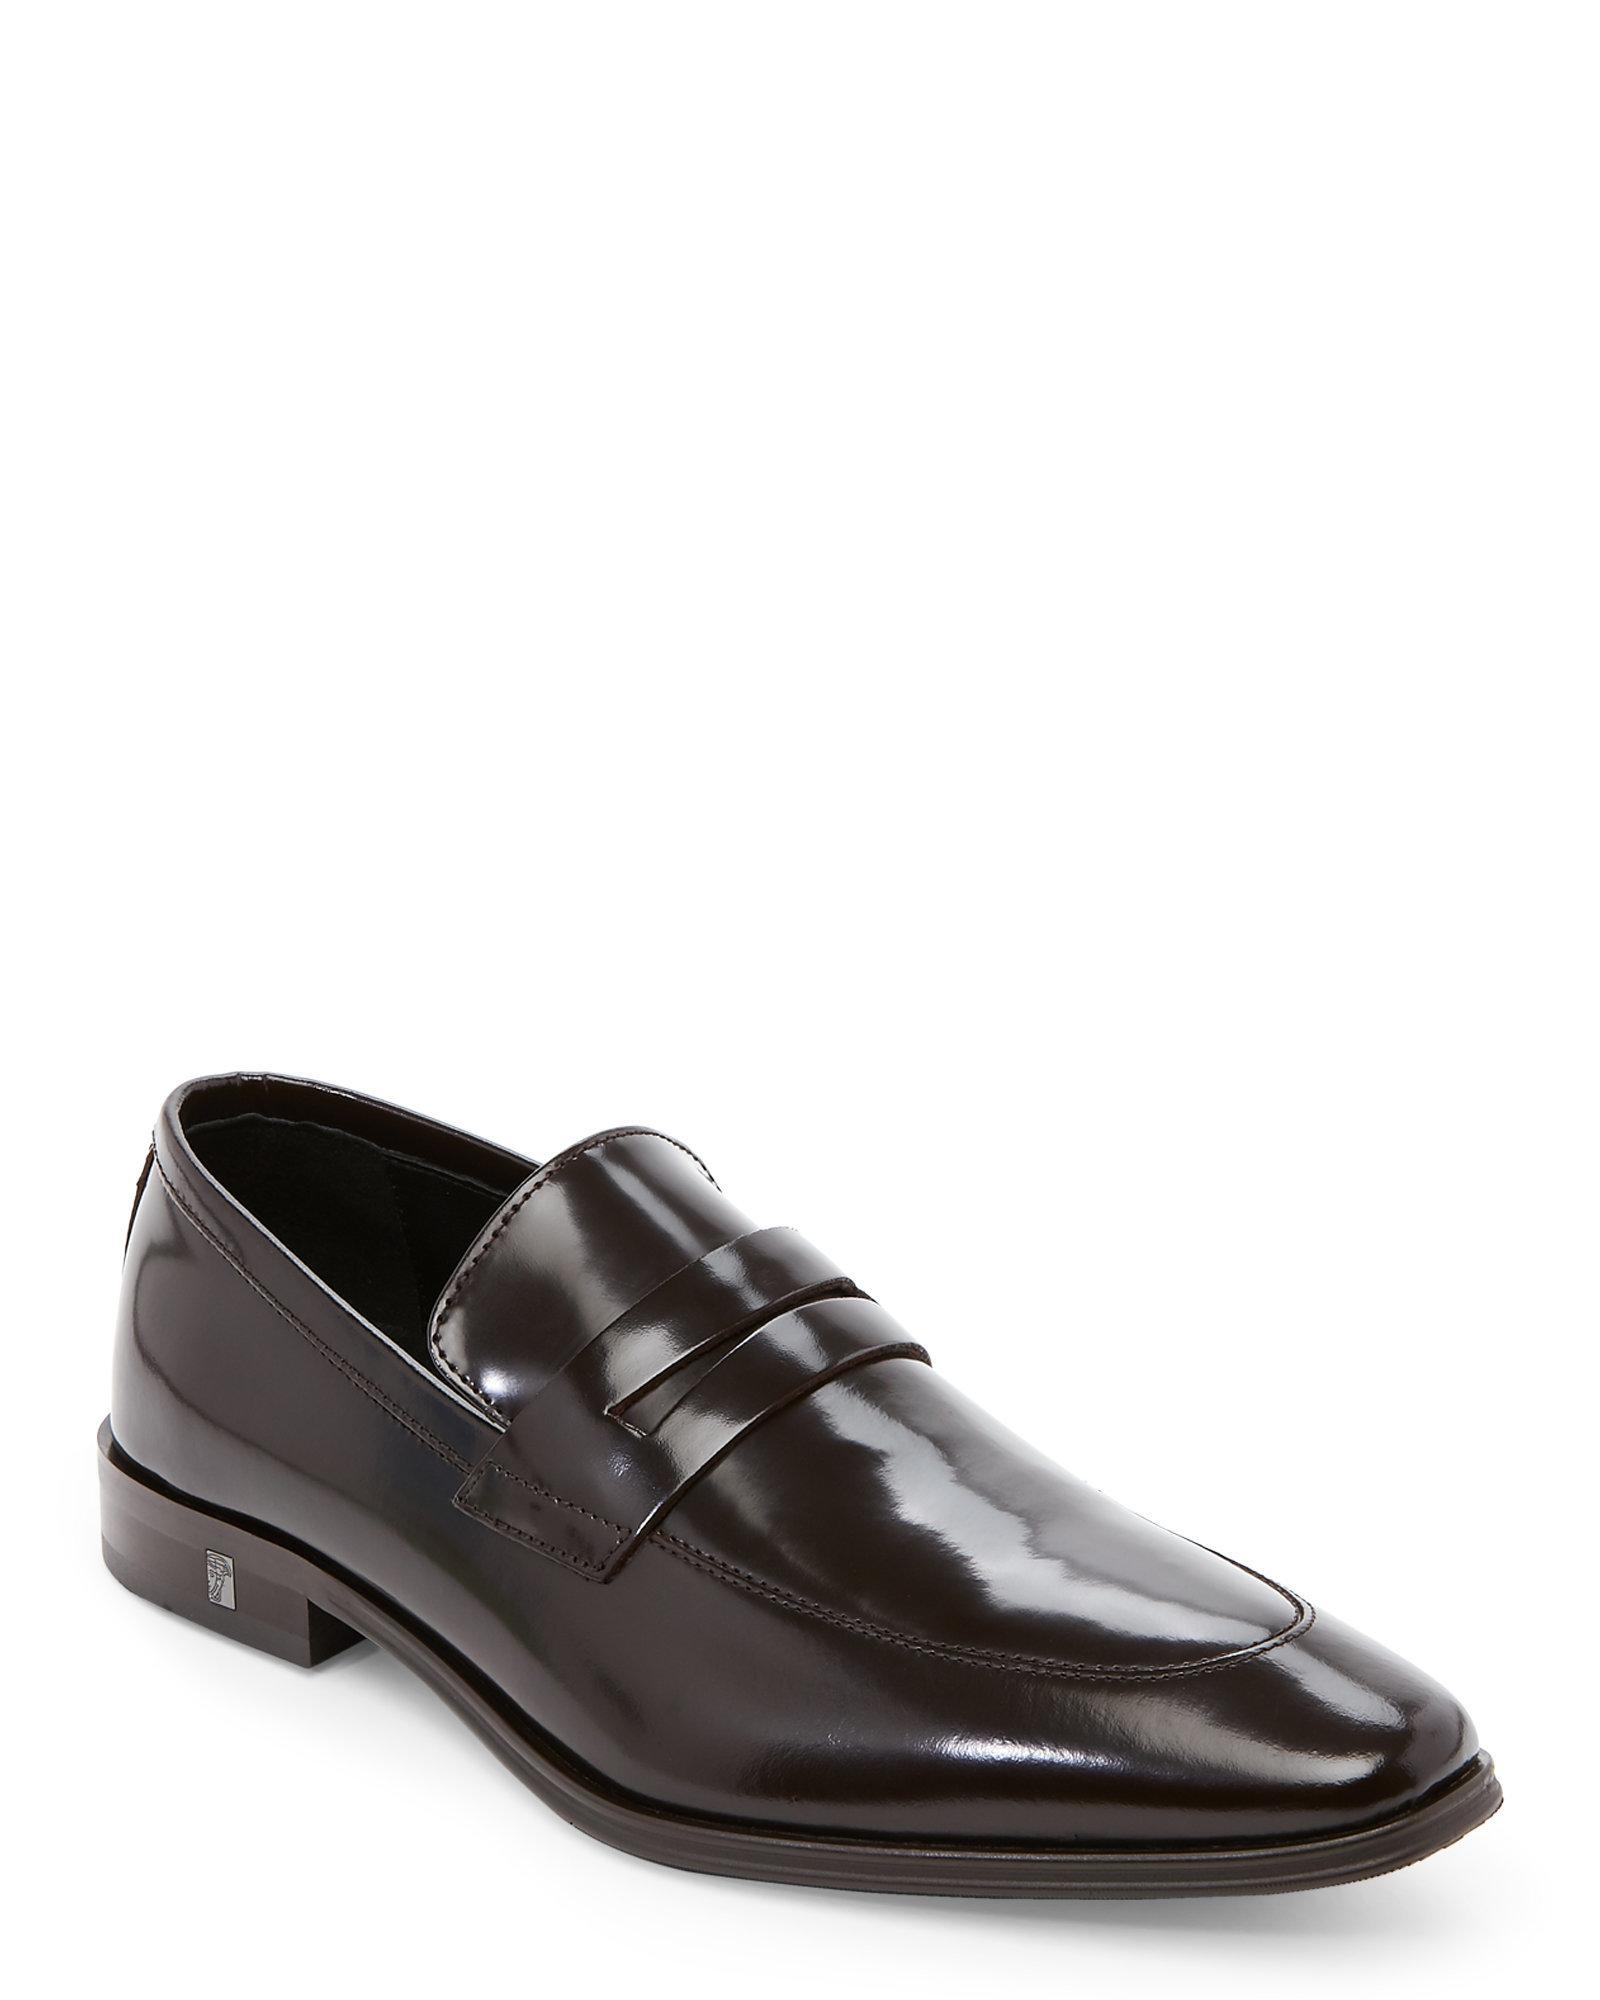 490c26ce62c Gallery. Previously sold at  Century 21 · Men s Penny Loafers ...